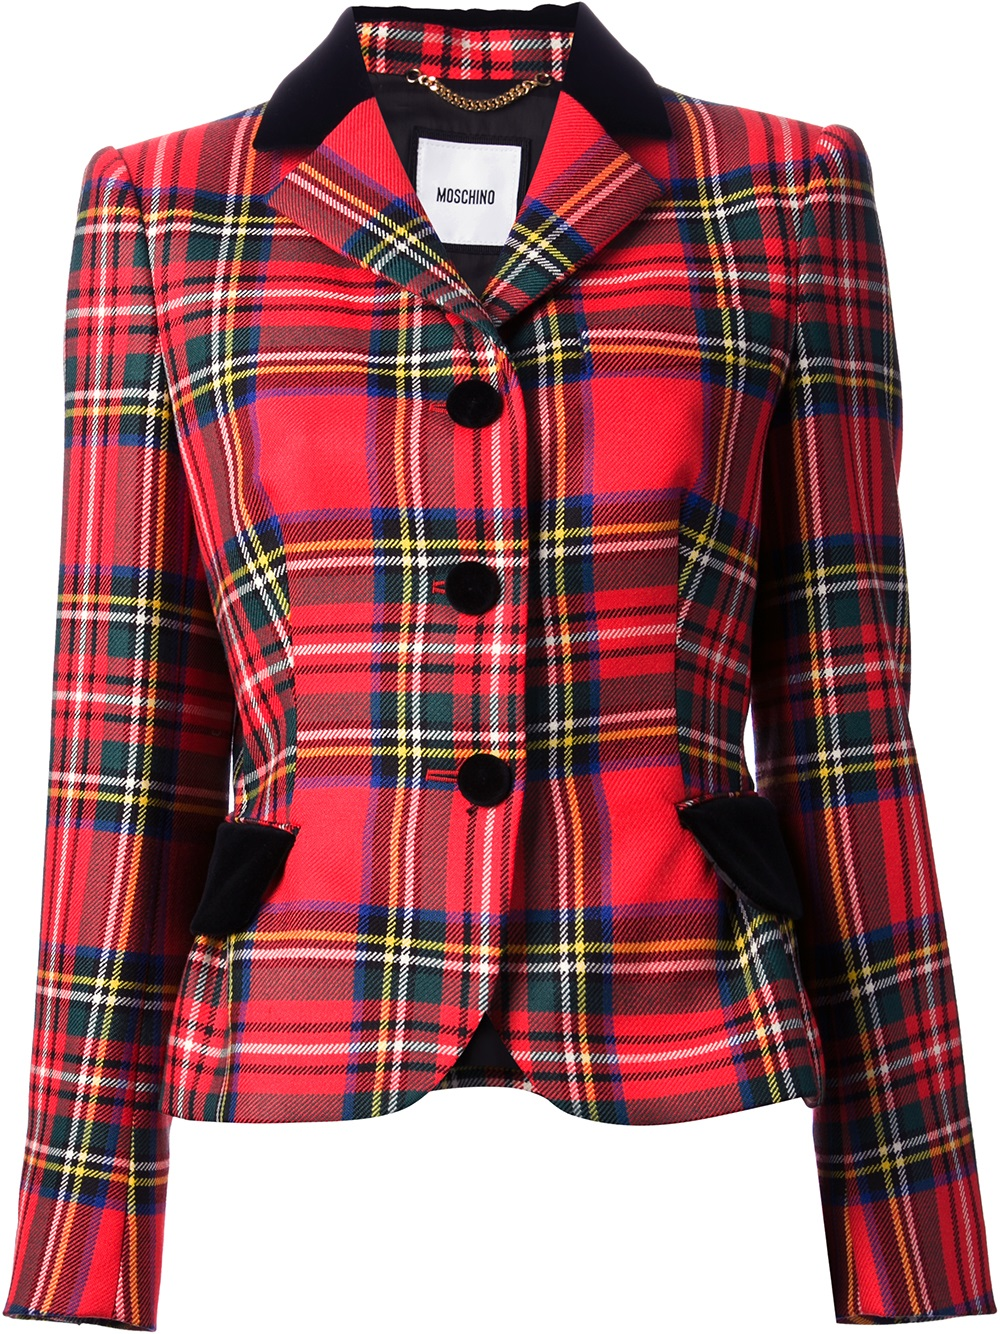 Lyst Moschino Tartan Peplem Riding Jacket In Red